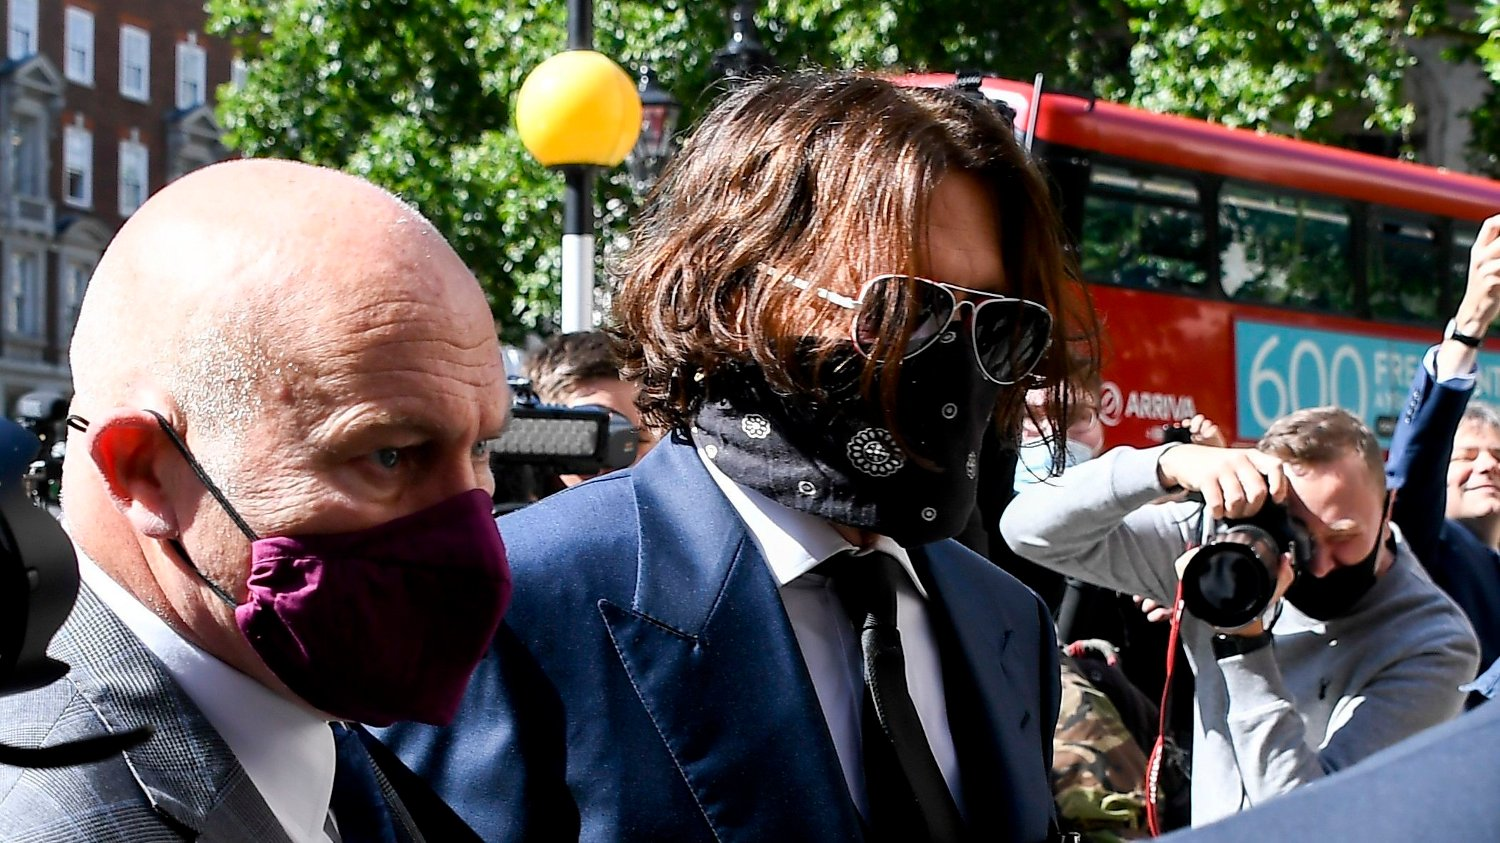 Britain Johnny Depp Johnny Depp, right, wearing a protective mask arrives at the Royal Court of Justice, in London, Tuesday, July 7, 2020. Johnny Depp is suing a tabloid newspaper for libel over an article that branded him a